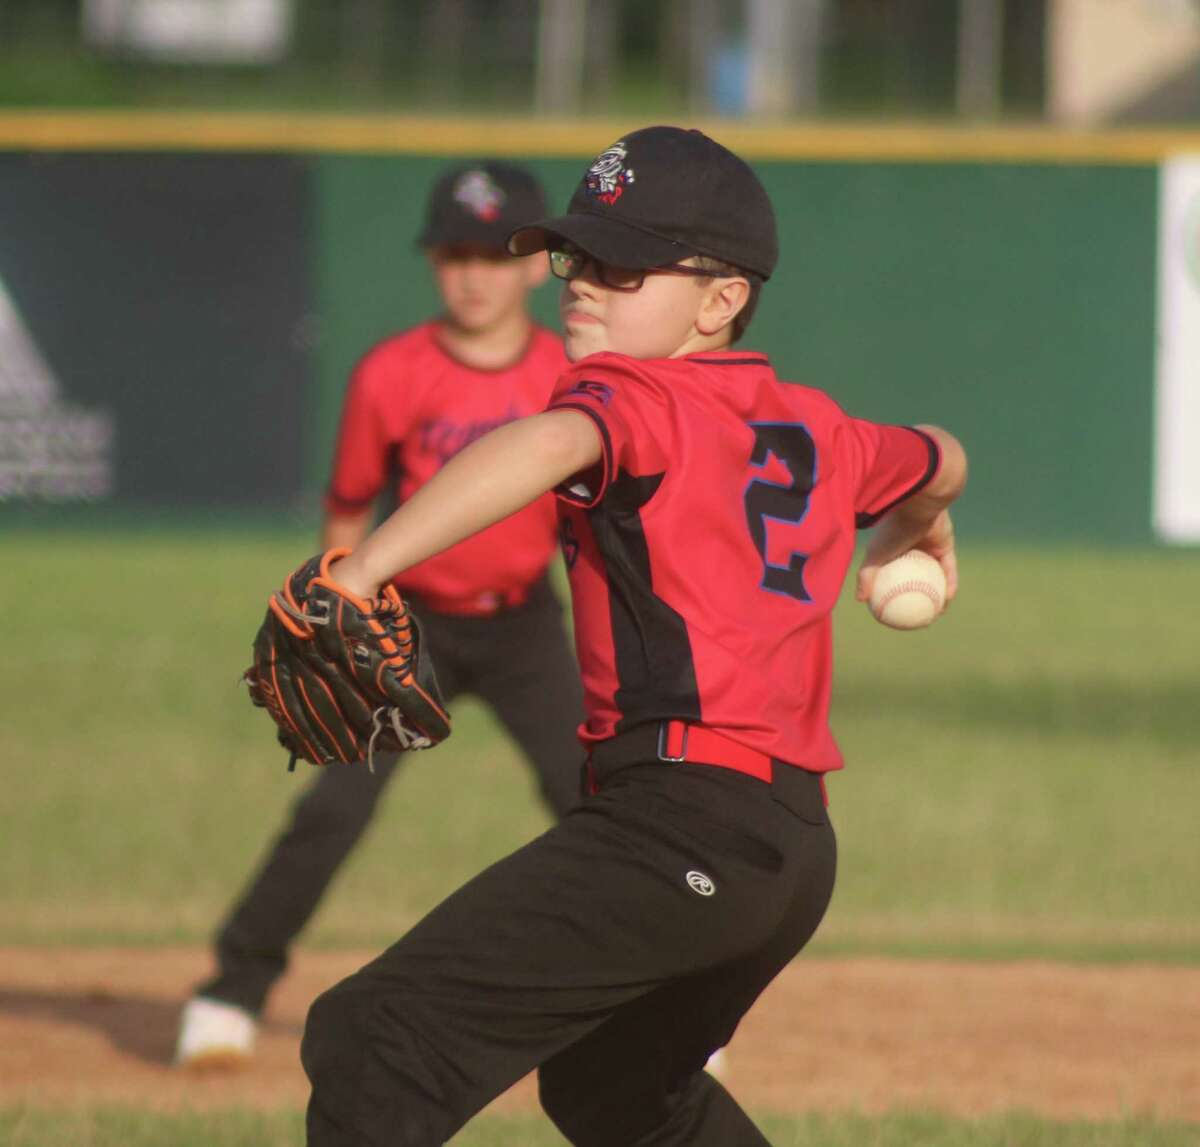 Trash Pandas hurler Quinn Toler struck out five of the first six batters he faced Tuesday night. He credits a target on his backdoor at home for his strong control.